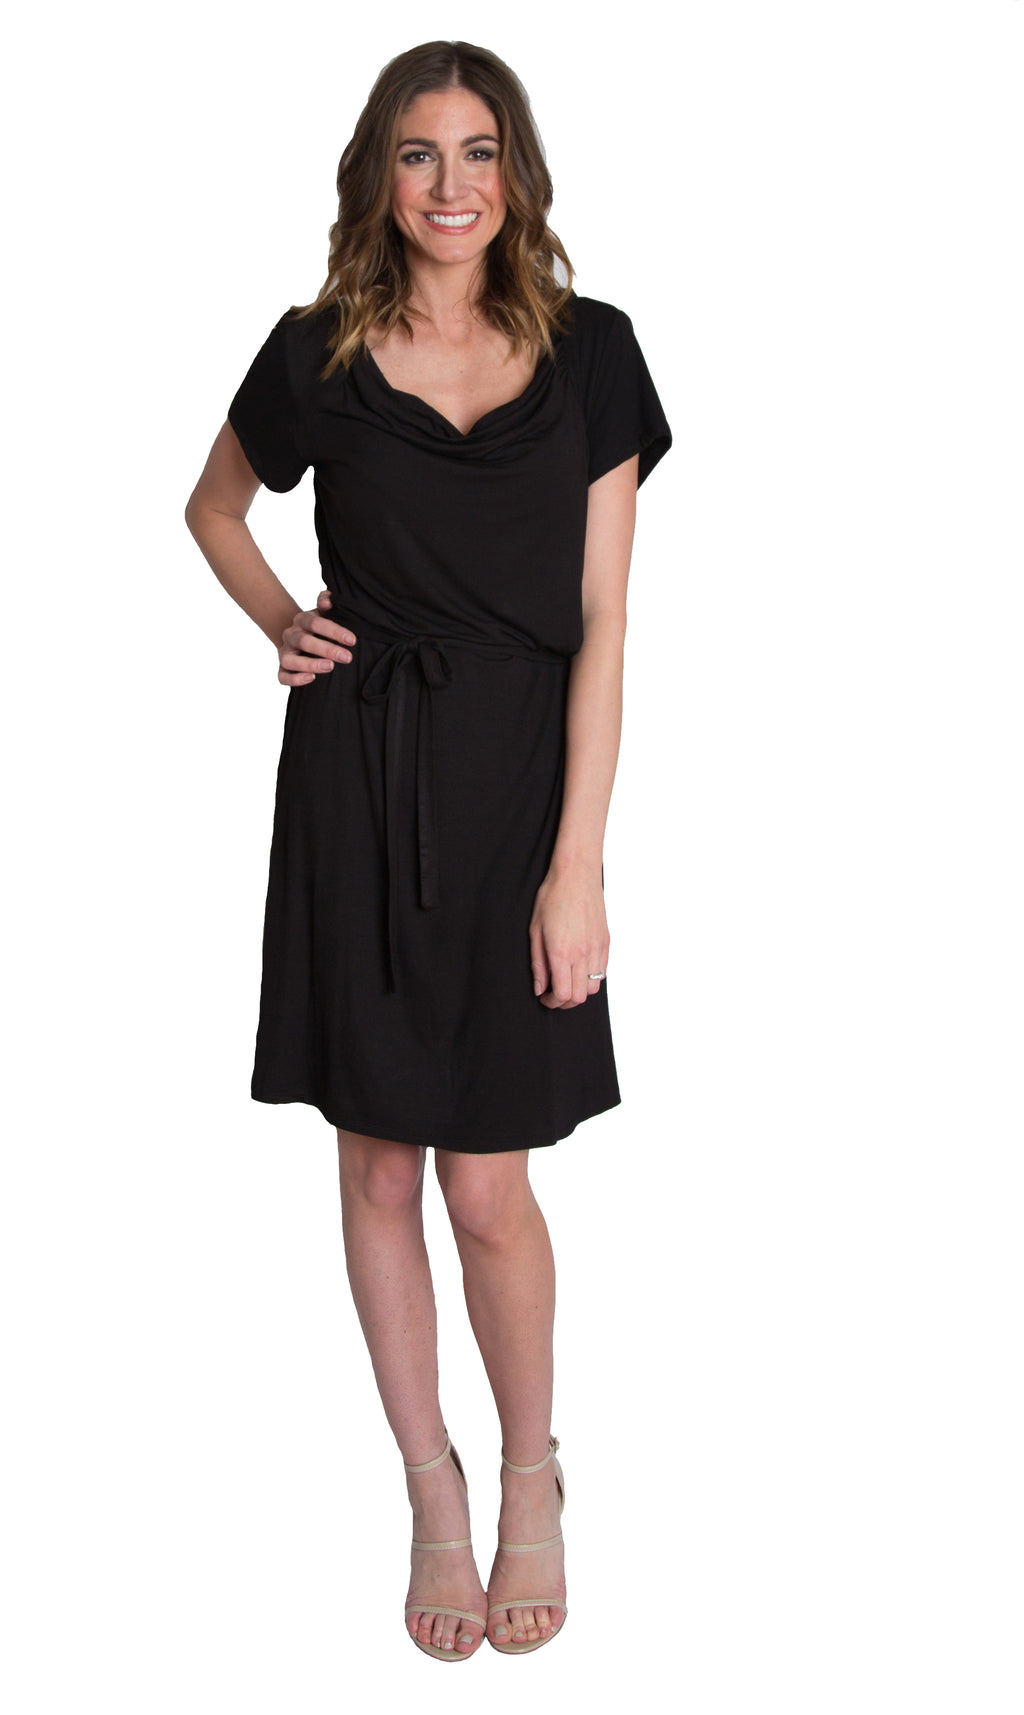 Chic Cowl Nursing Dress - Black